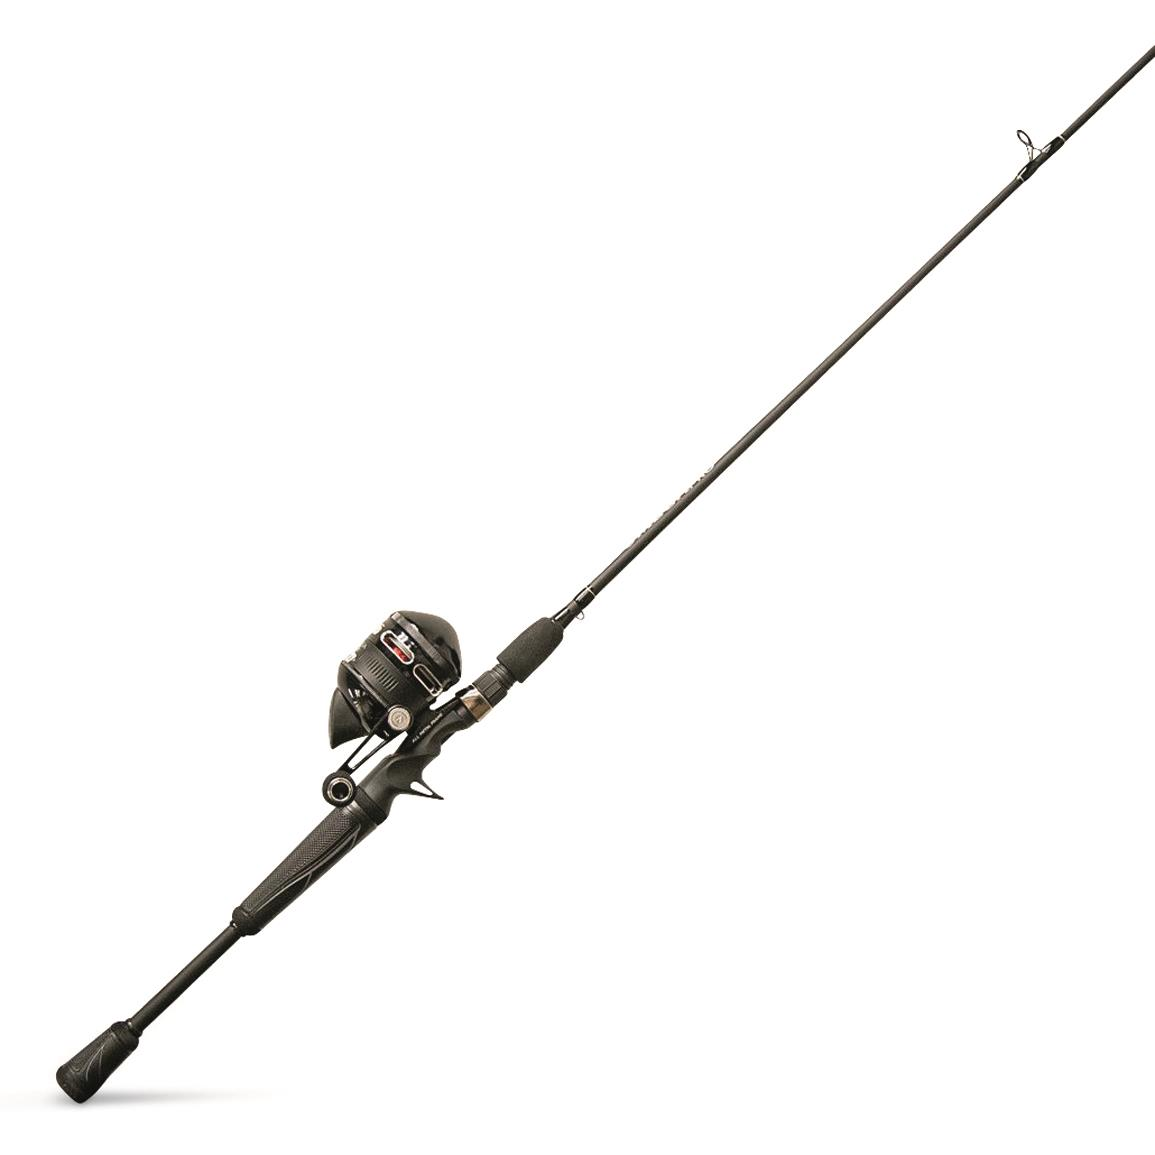 Zebco Omega Pro Spincast Fishing Rod and Reel Combo